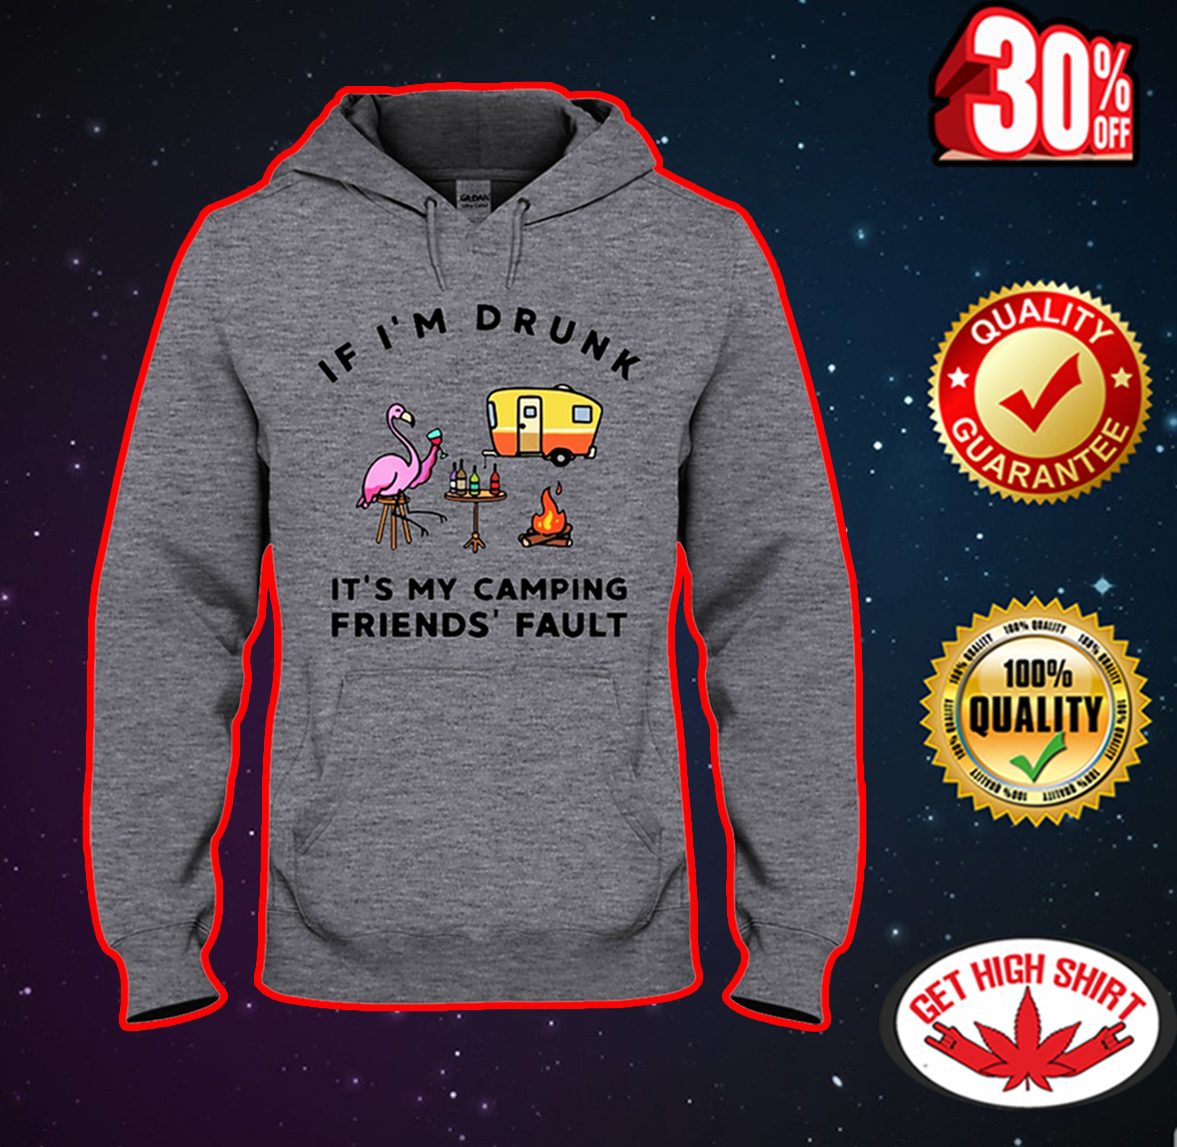 Flamingo if I'm drunk it's my camping friend's fault hooded sweatshirt